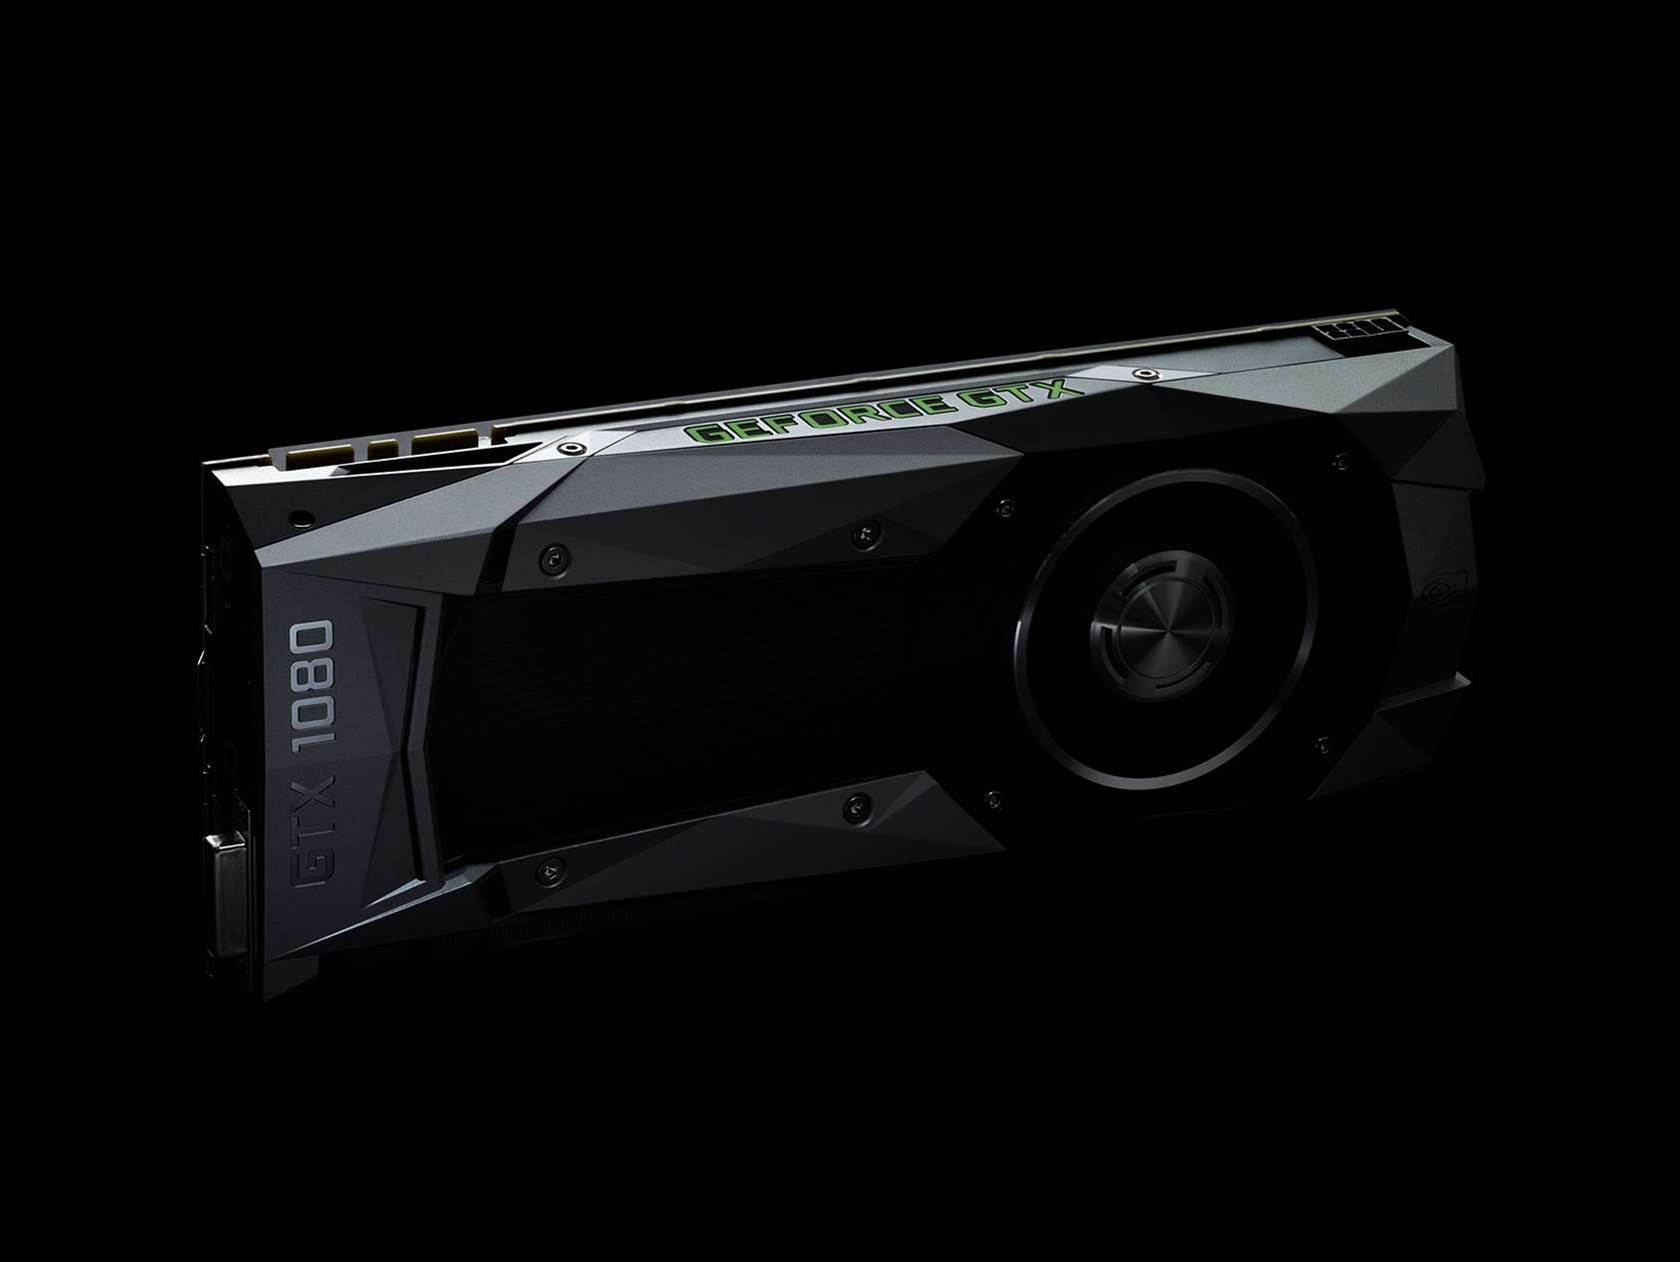 Nvidia officially launched its GTX 1080 and 1070 over the weekend